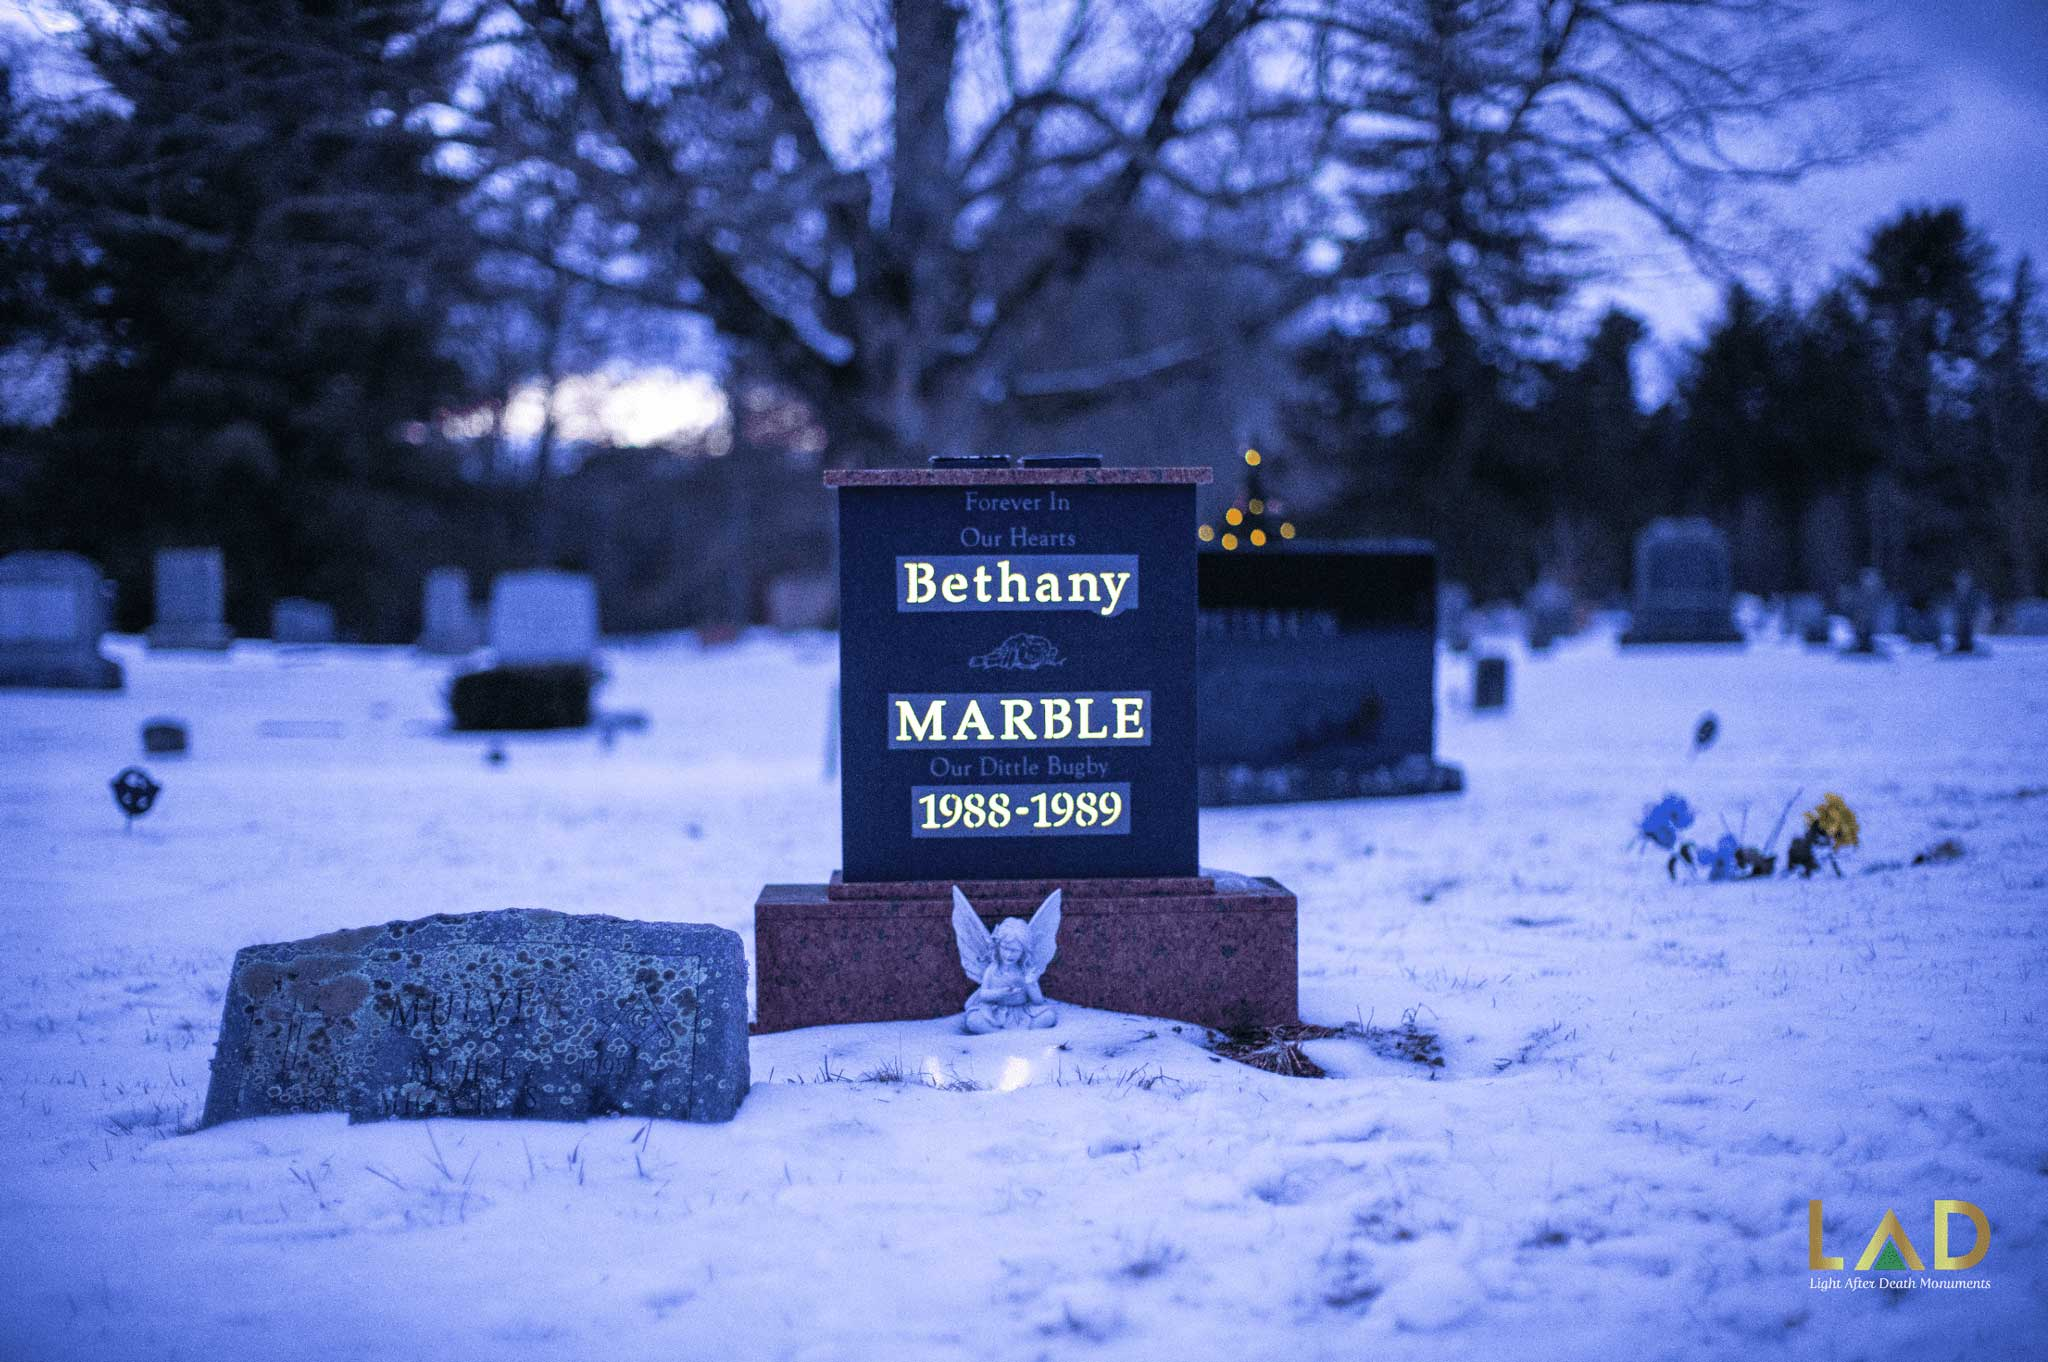 Bethany Marble, forever in our hearts solar illuminated monument located at Pine Grove Cemetery in Brookfield, Massachusetts